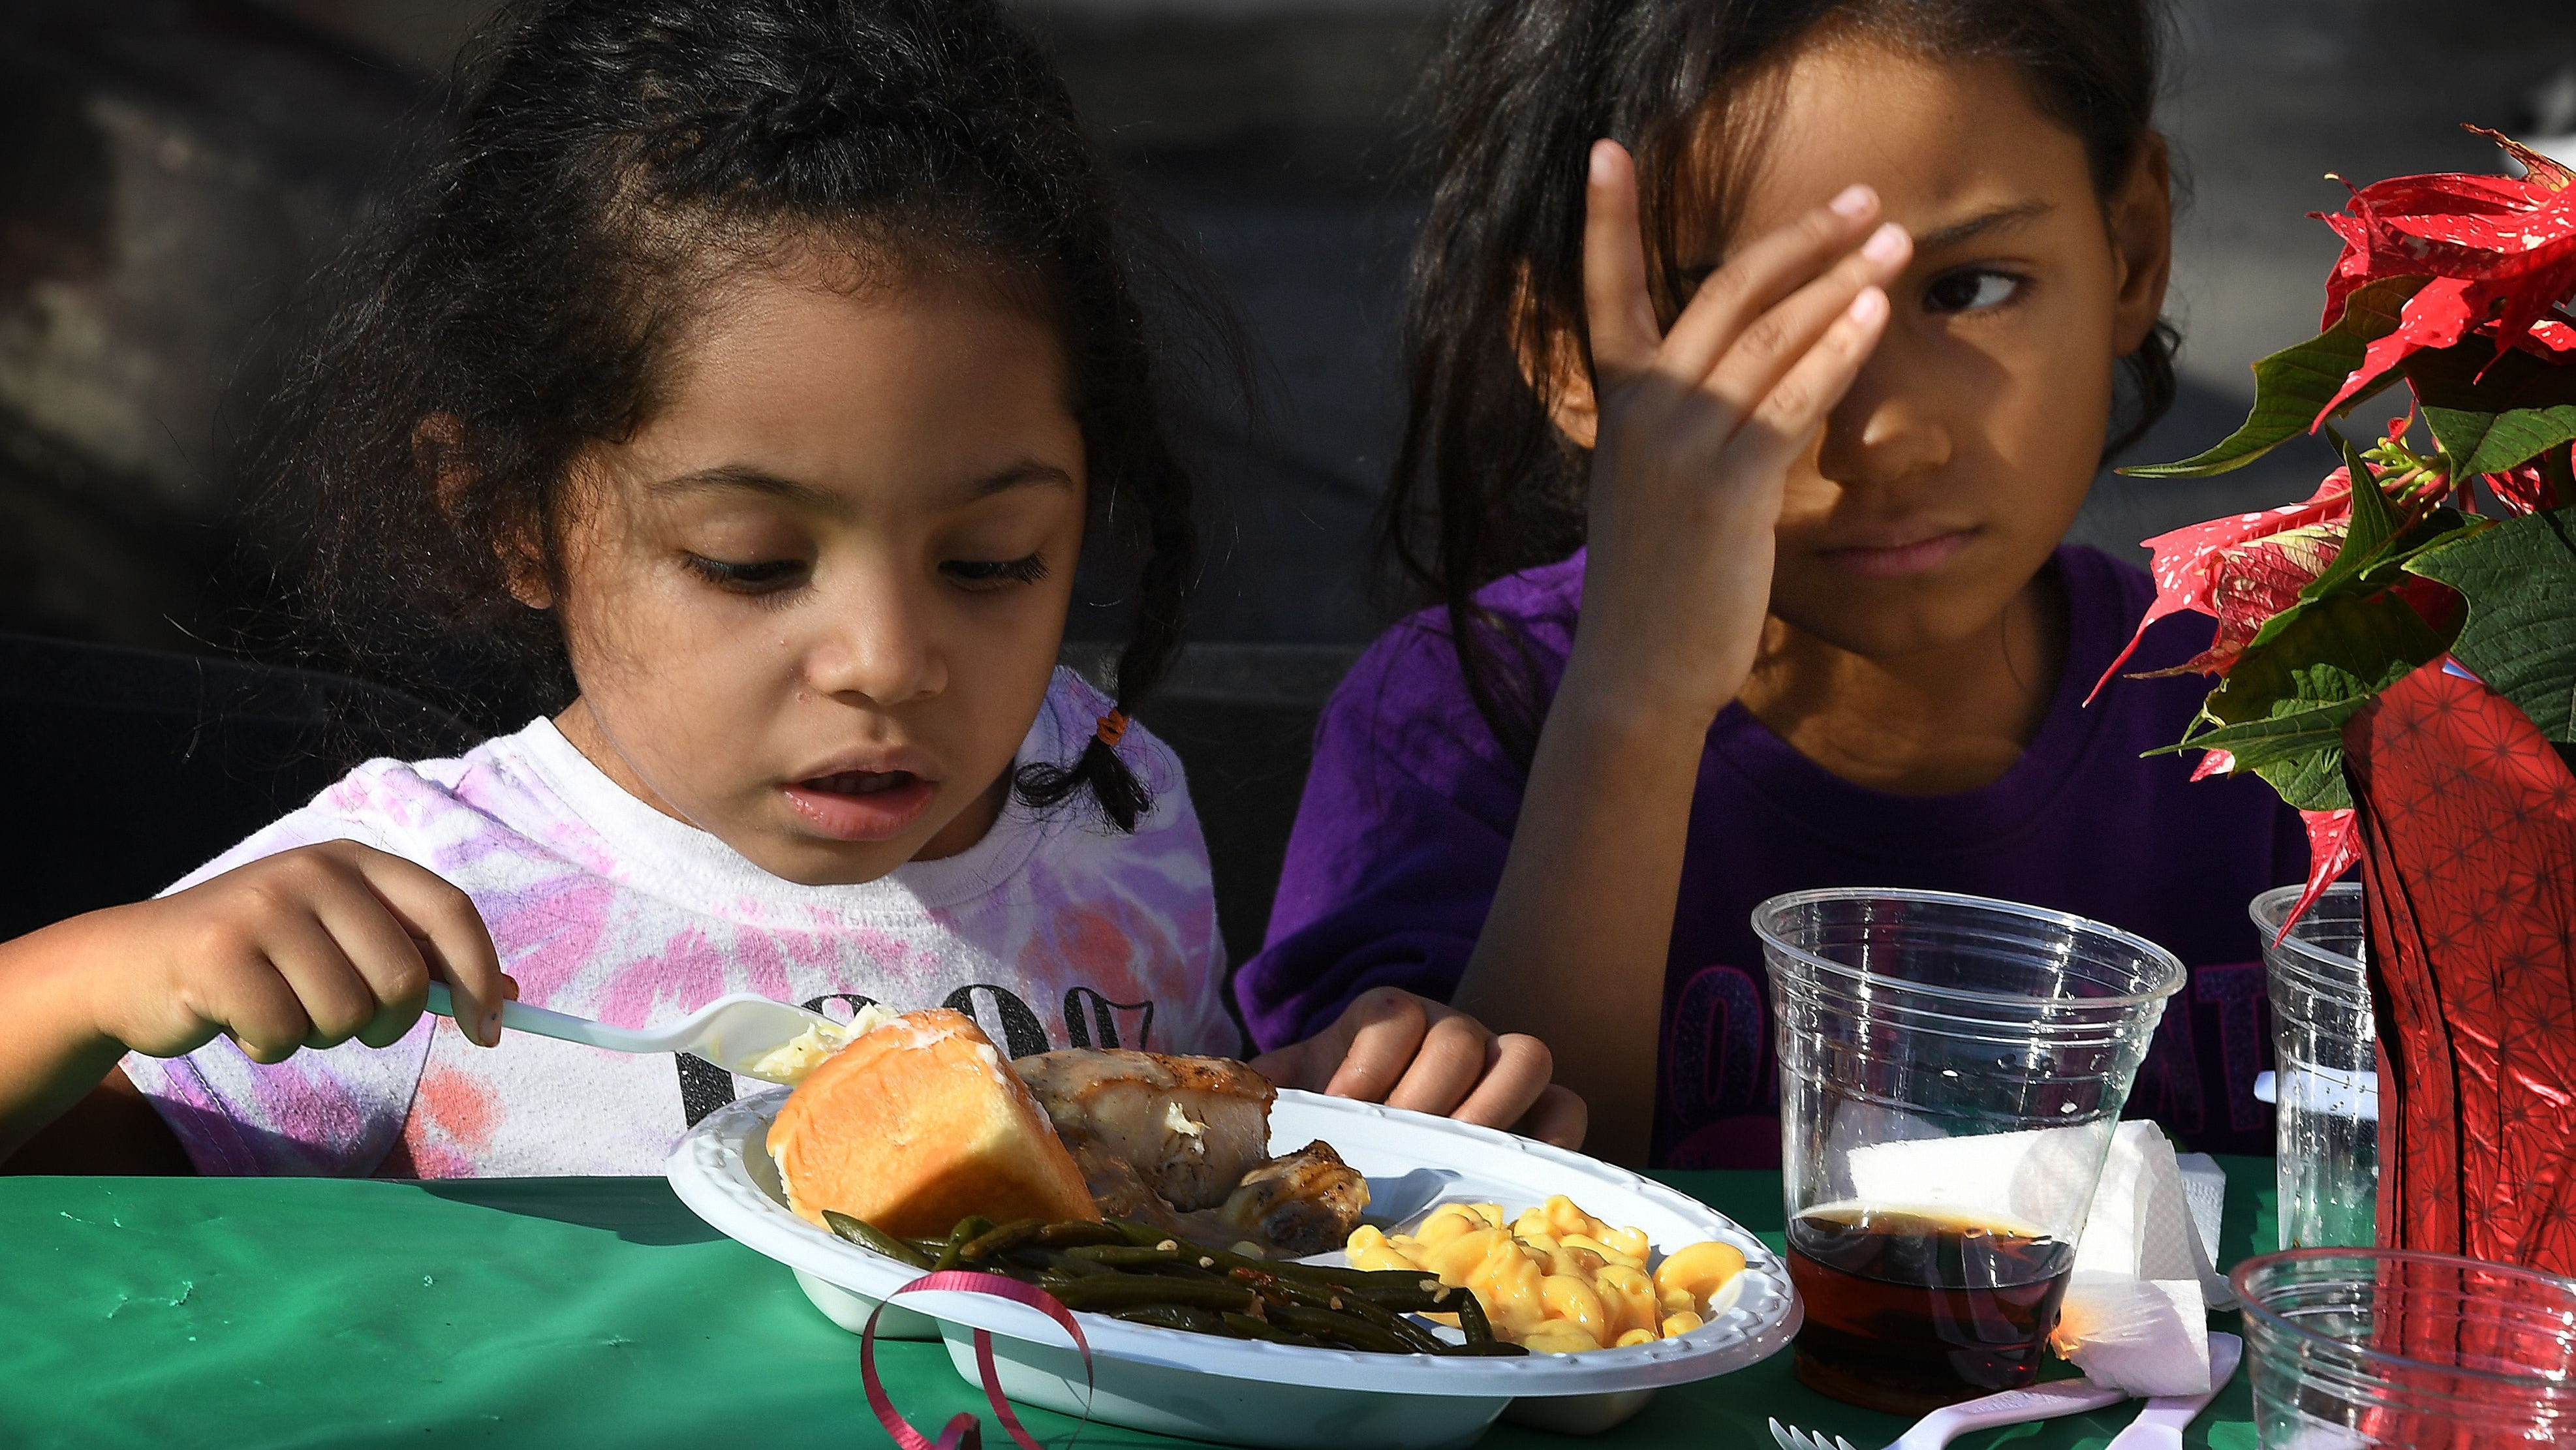 Children are among the desperately poor homeless who live on Los Angeles' Skid Row, which have been hurt by the teachers' strike. Here are two enjoying a meal last month at a holiday feast event.